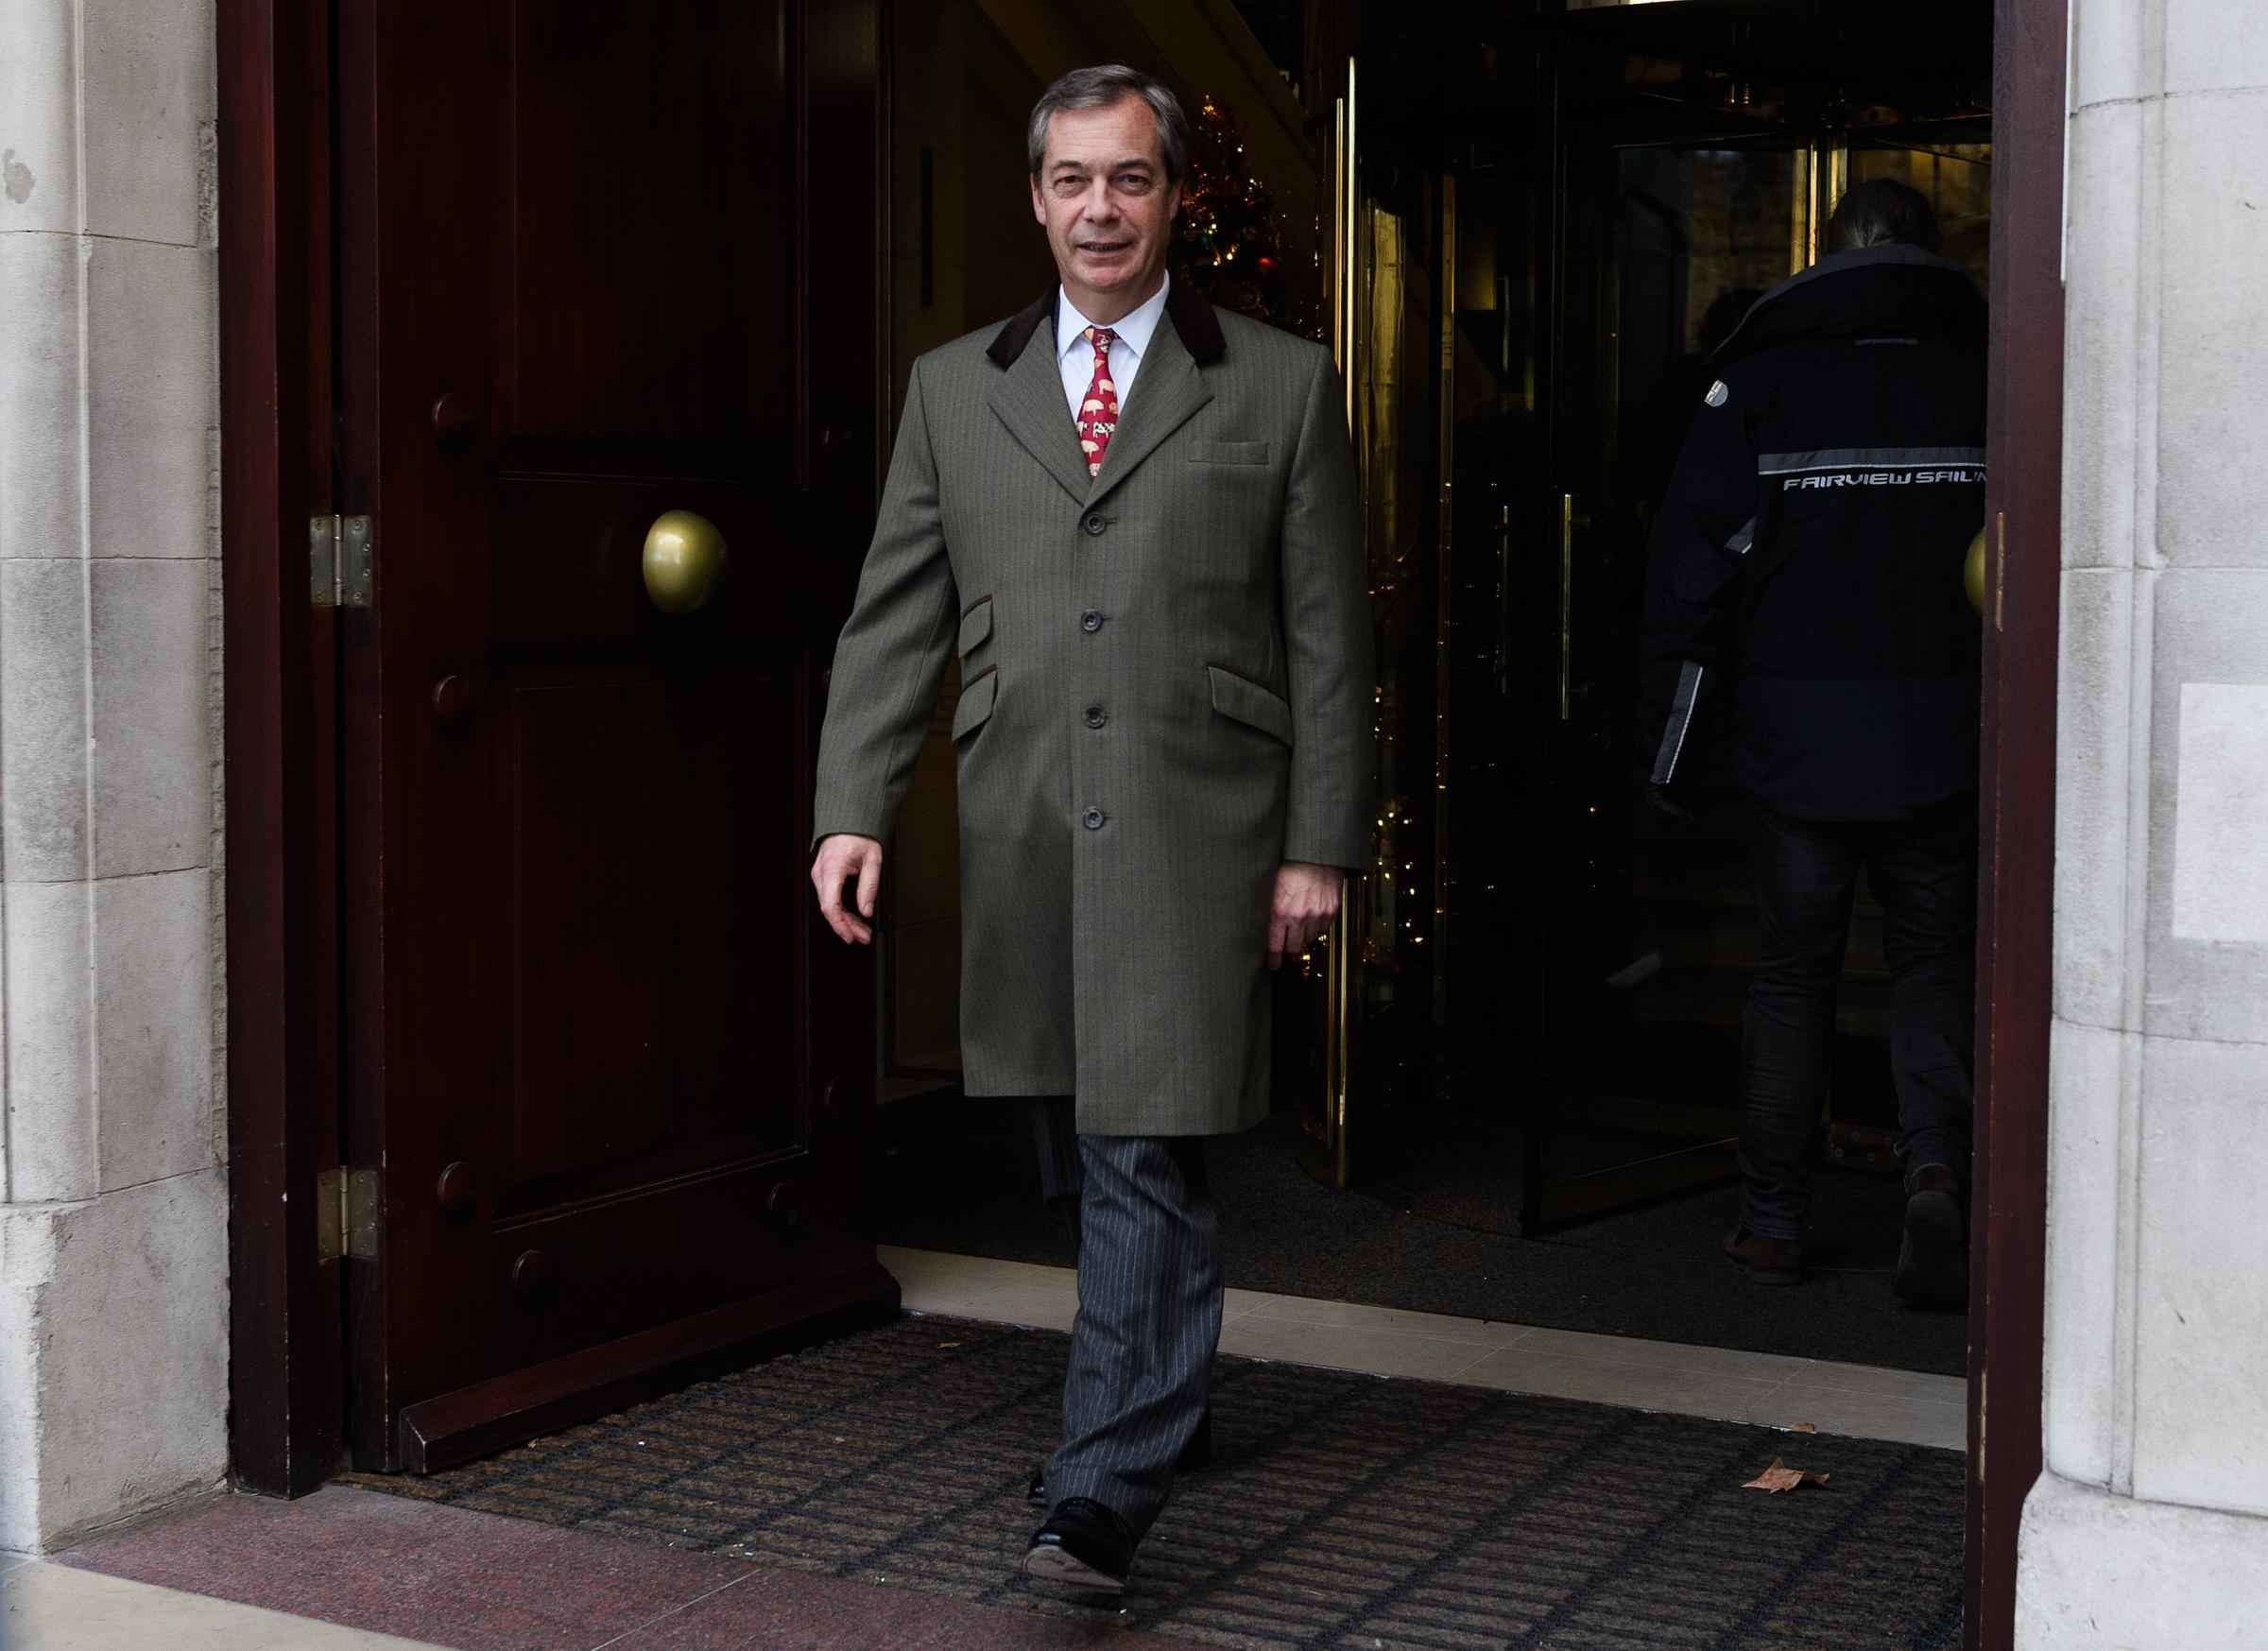 Nigel Farage argued that holding another vote on EU membership would settle the debate